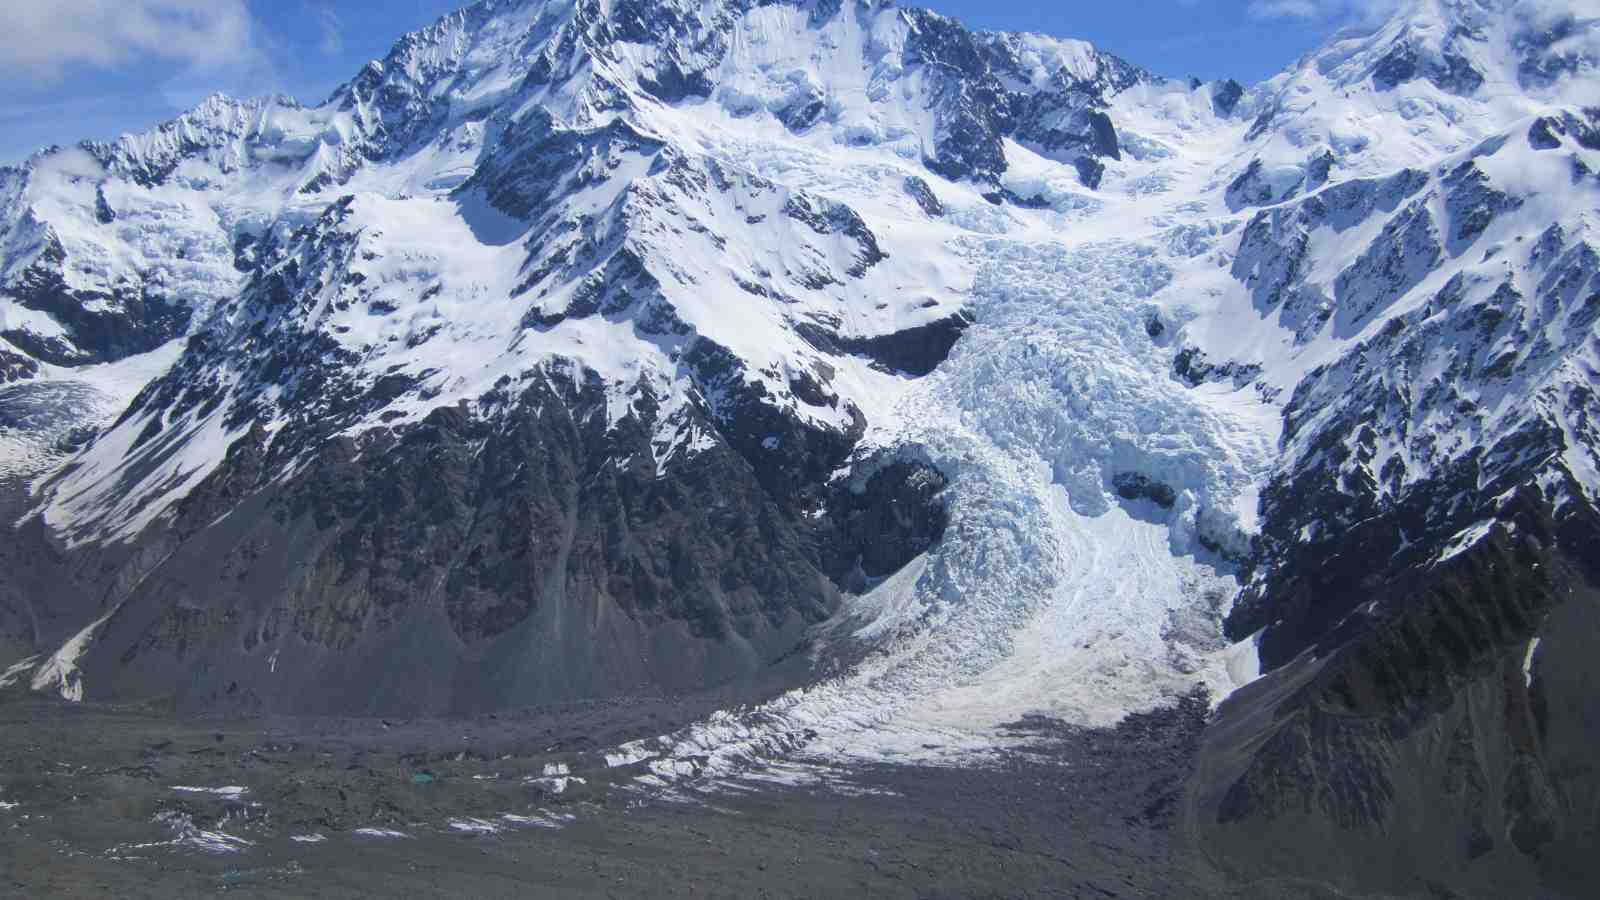 picture Scientists Predict the Alps Will Lose 70 Percent of Its Snow by 2100